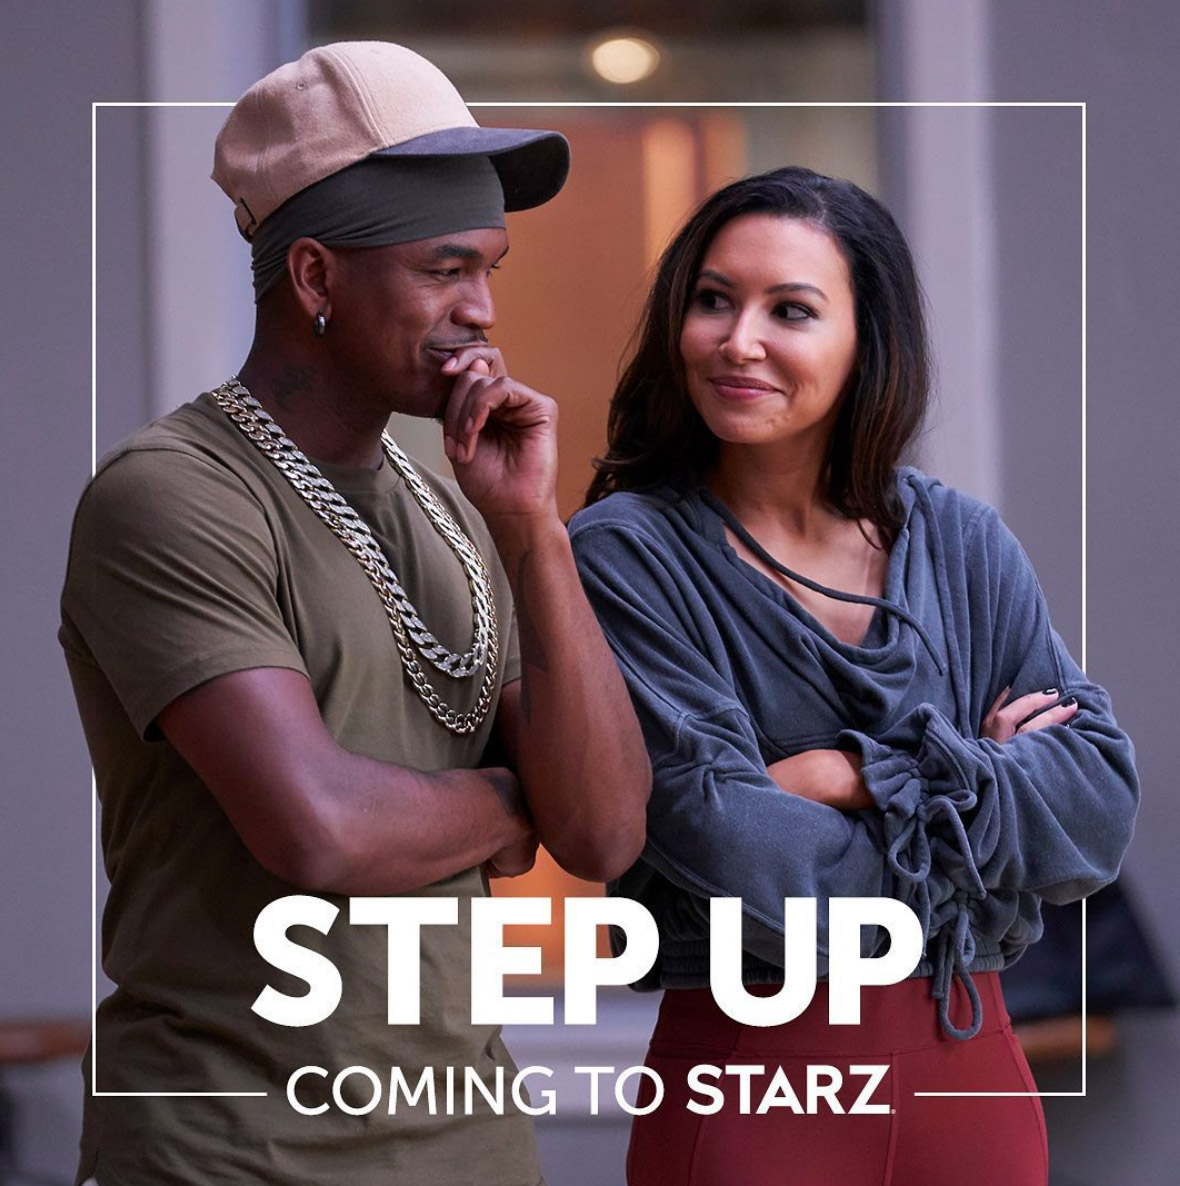 Step Up med Ne-Yo og Naya Rivera er snart klar for sesong 3 (Starz)